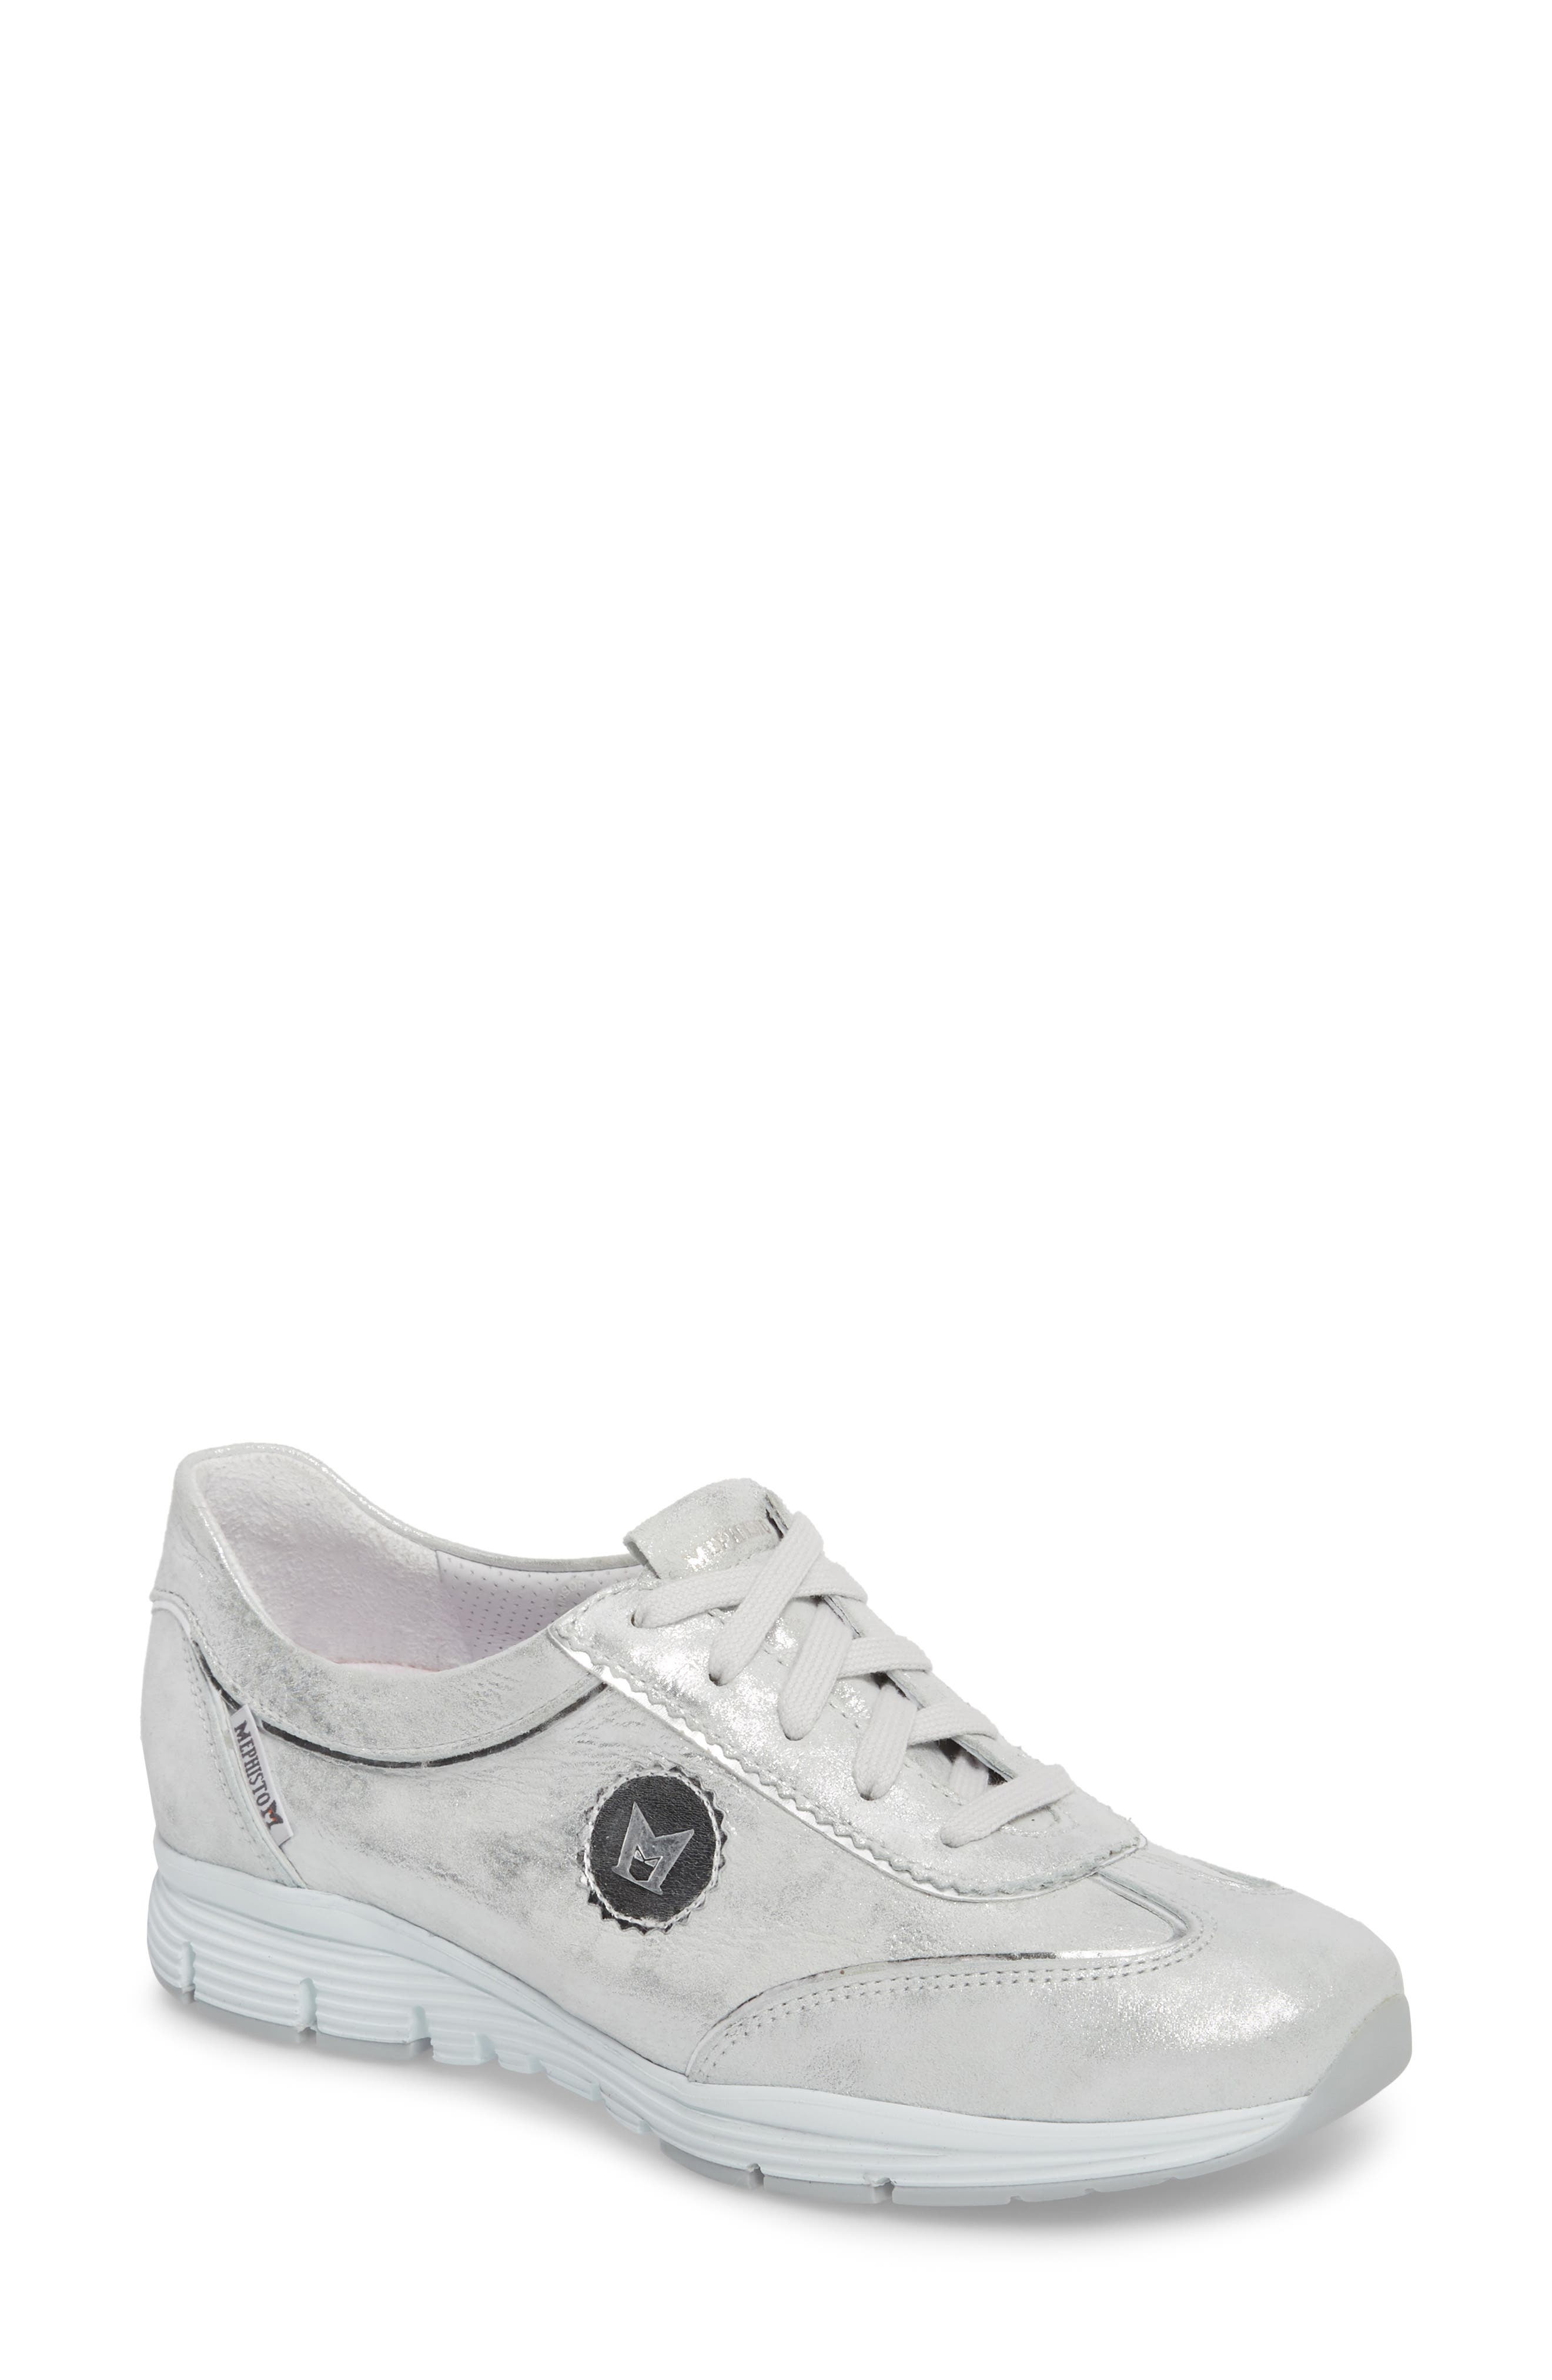 'Yael' Soft-Air Sneaker,                             Main thumbnail 1, color,                             Silver Leather